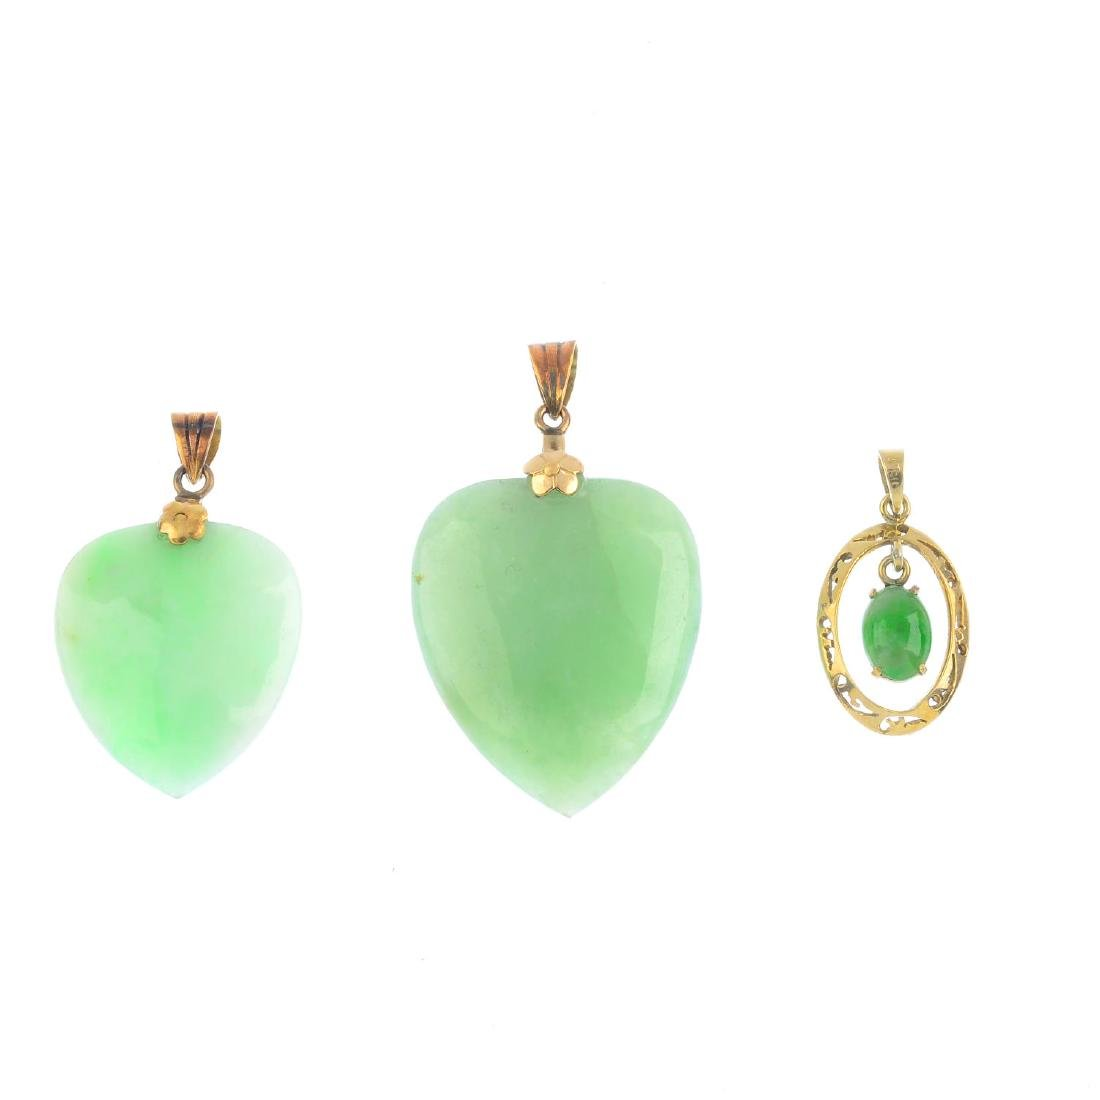 Three jade pendants. To include two heart-shape jade